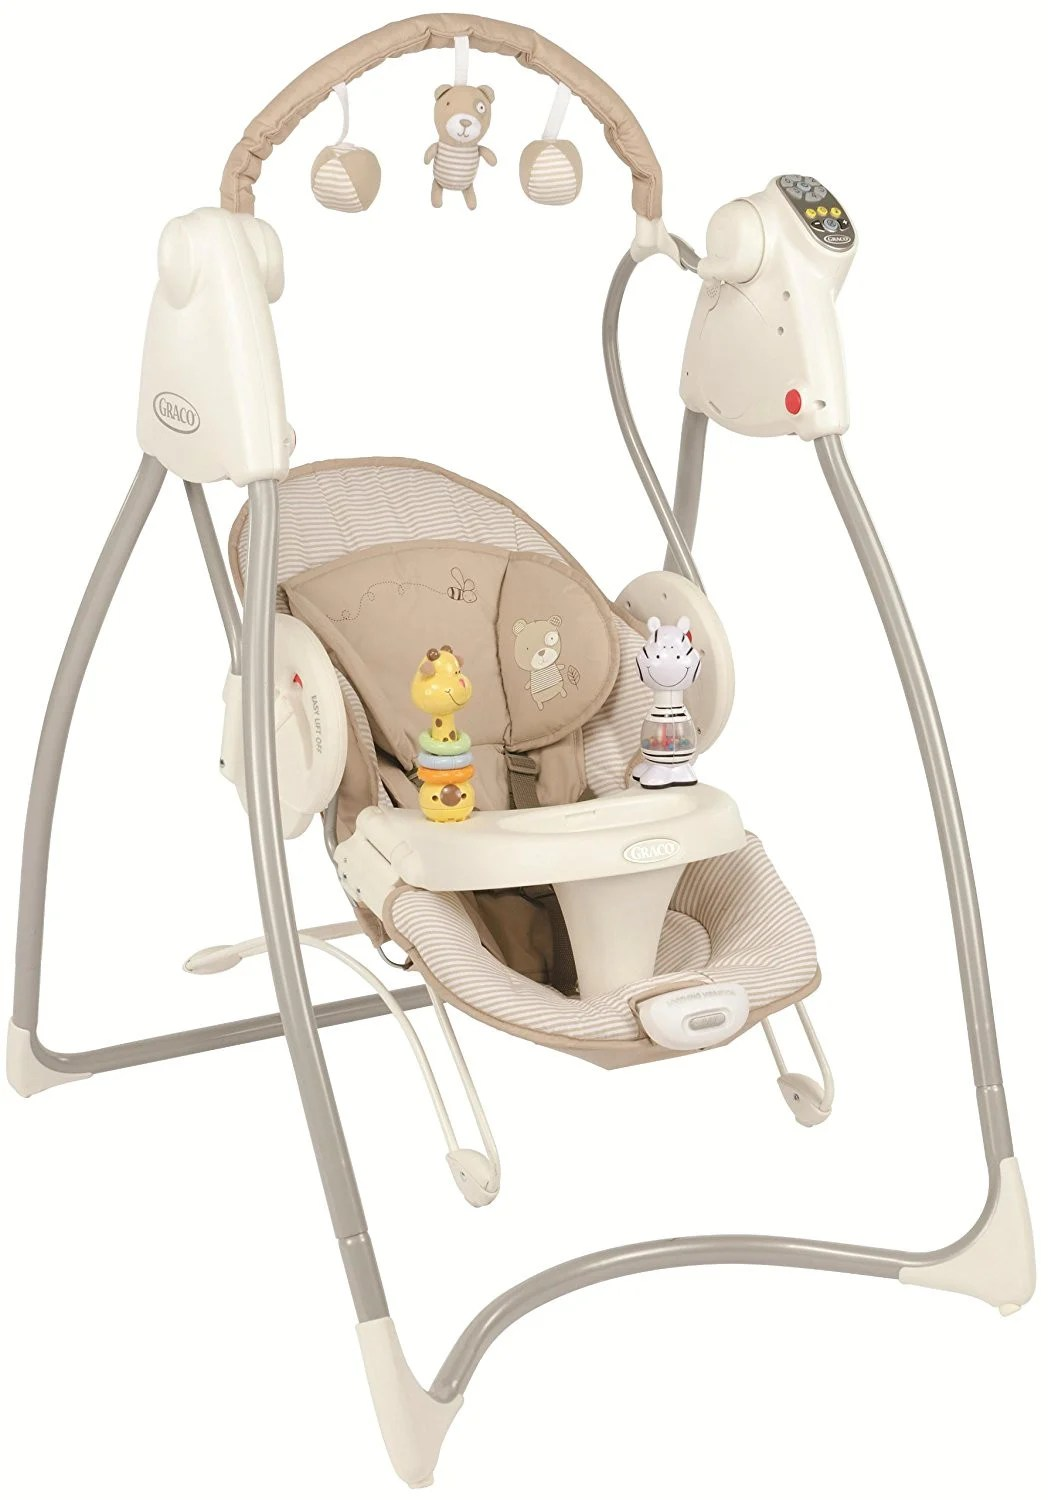 baby swing chair nz folding by regina spektor graco and bounce benny bell